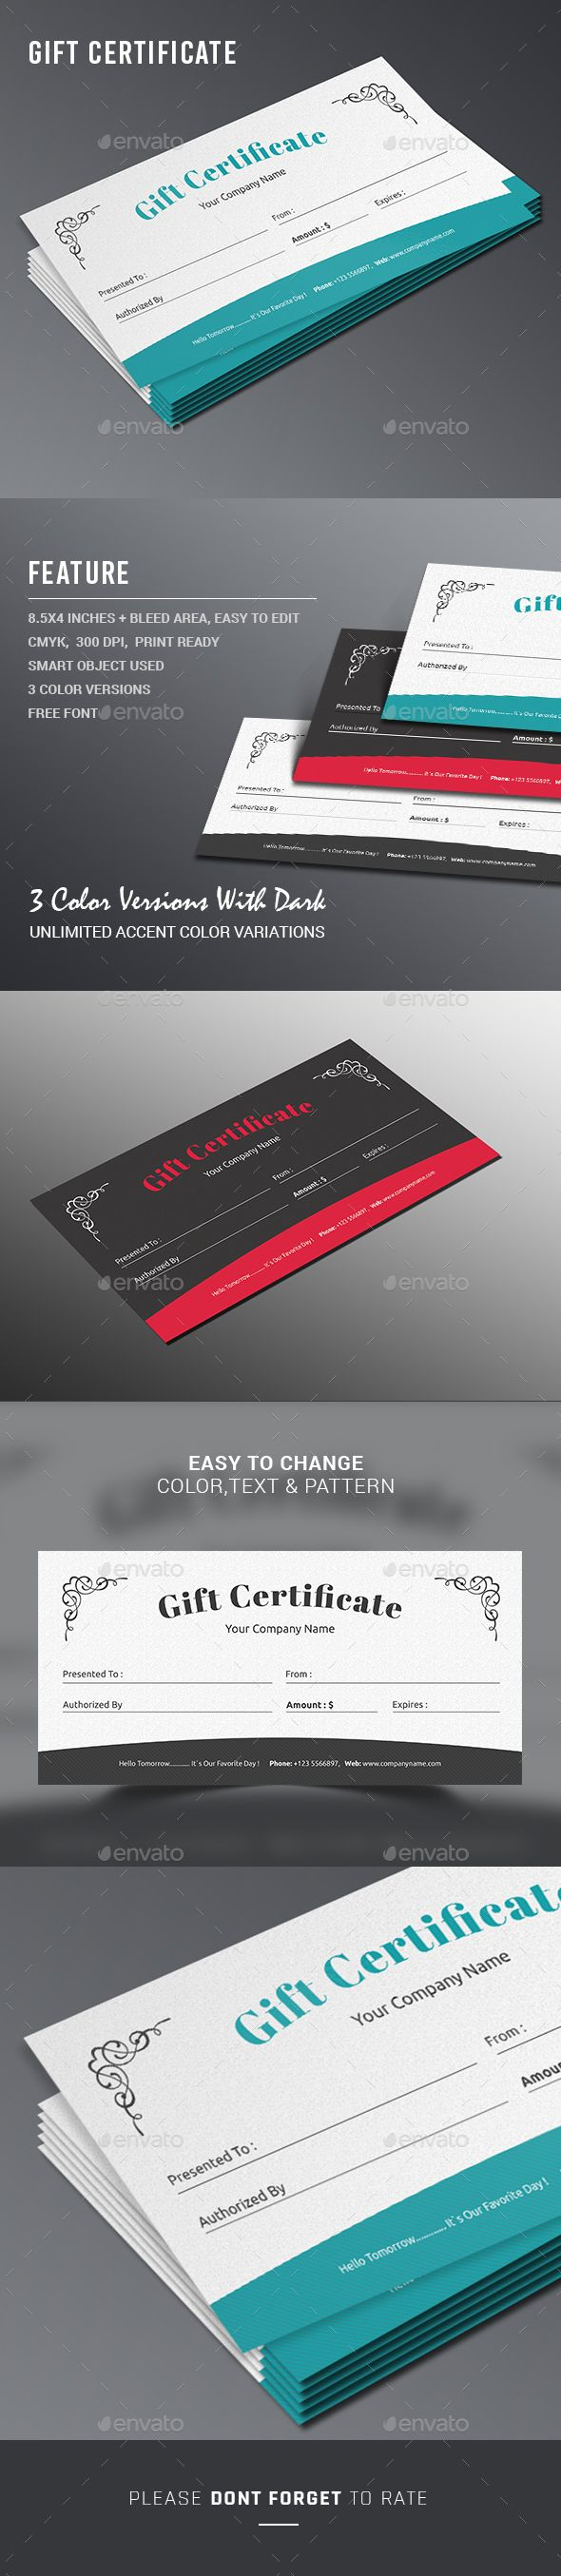 18 best gift certificate images on pinterest infographic gift certificate psd design i certificate templates for multipurpose usage i download https yelopaper Choice Image